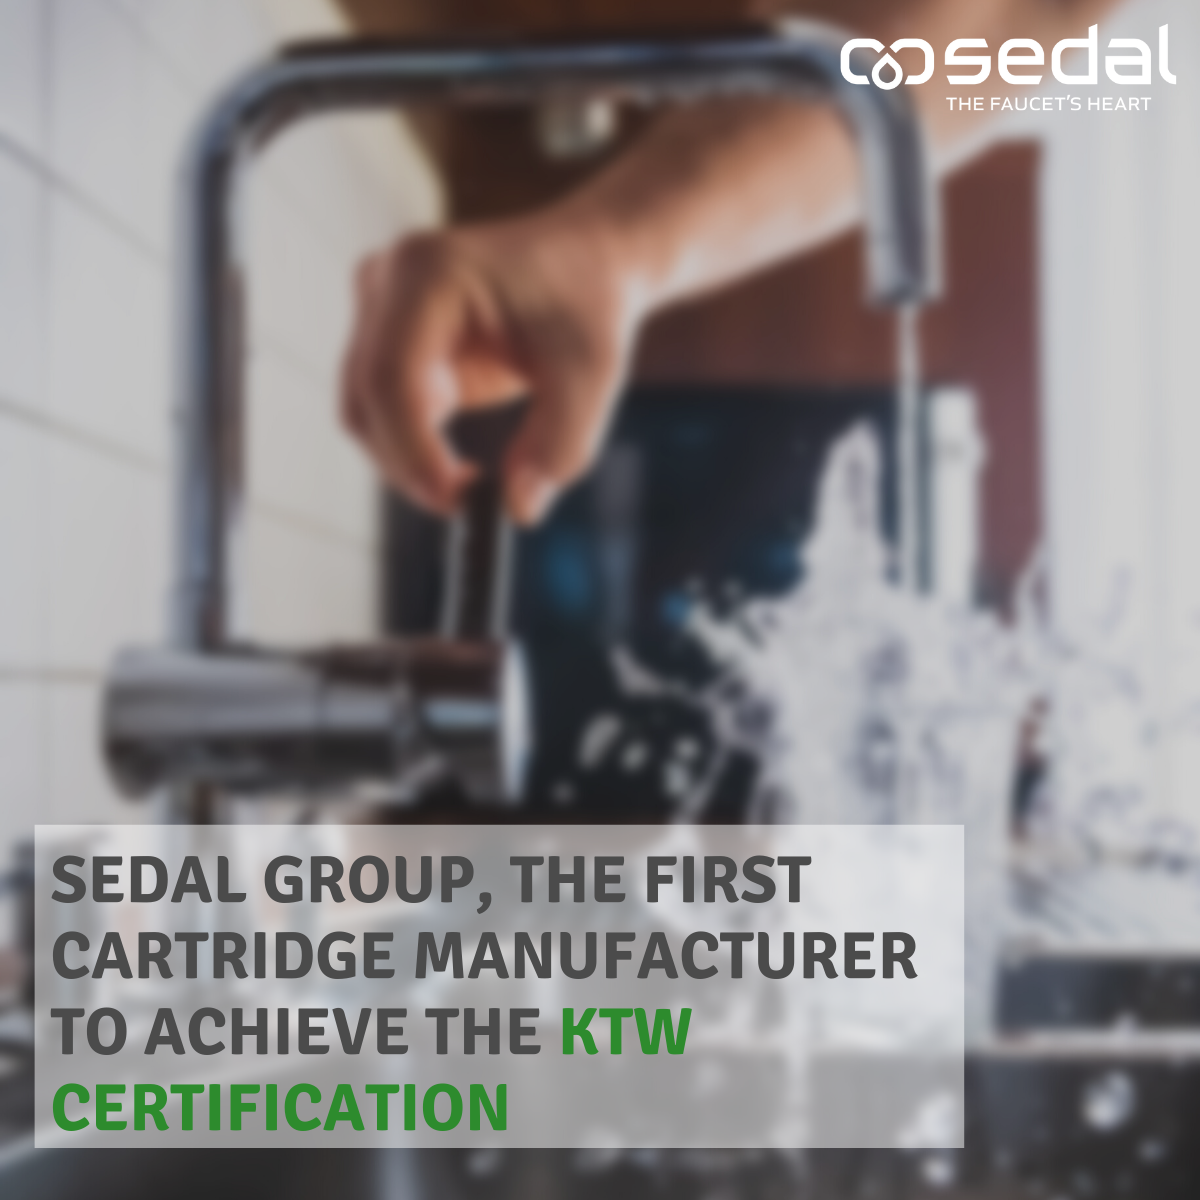 Sedal Group achieves KTW certification